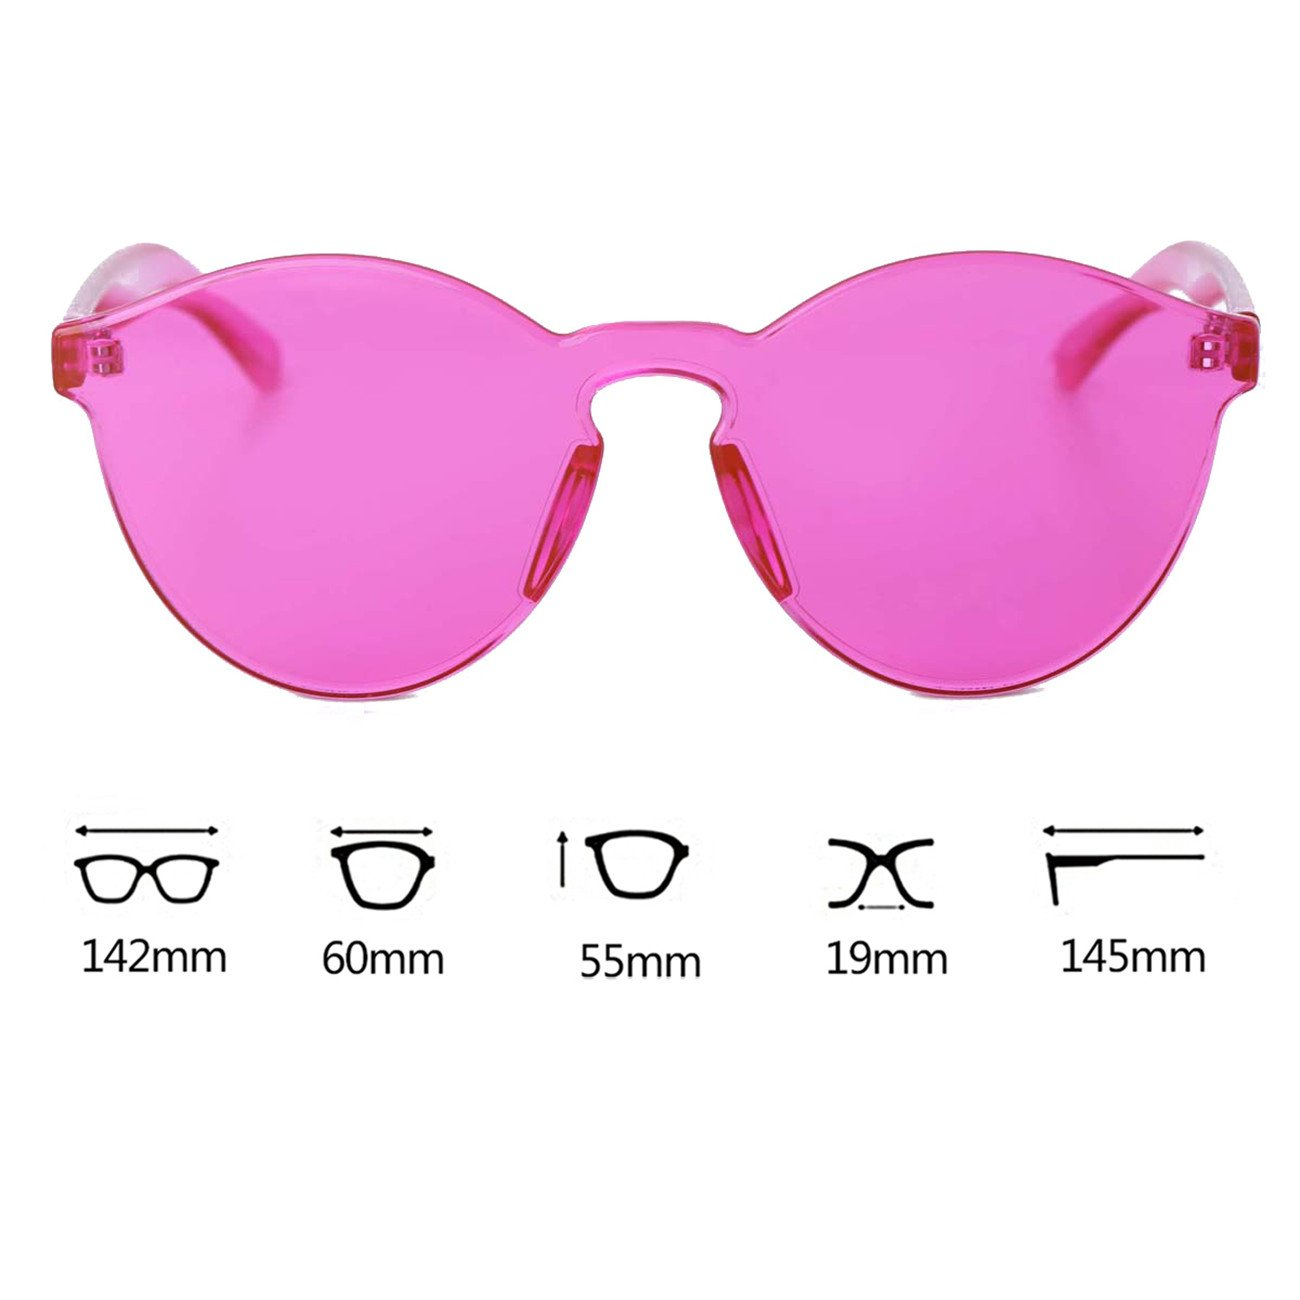 WISH CLUB Cat Eye Rimless Sunglasses for Women Oversized Lightweight Transparent Glasses Candy Color Eyewear (Pink)